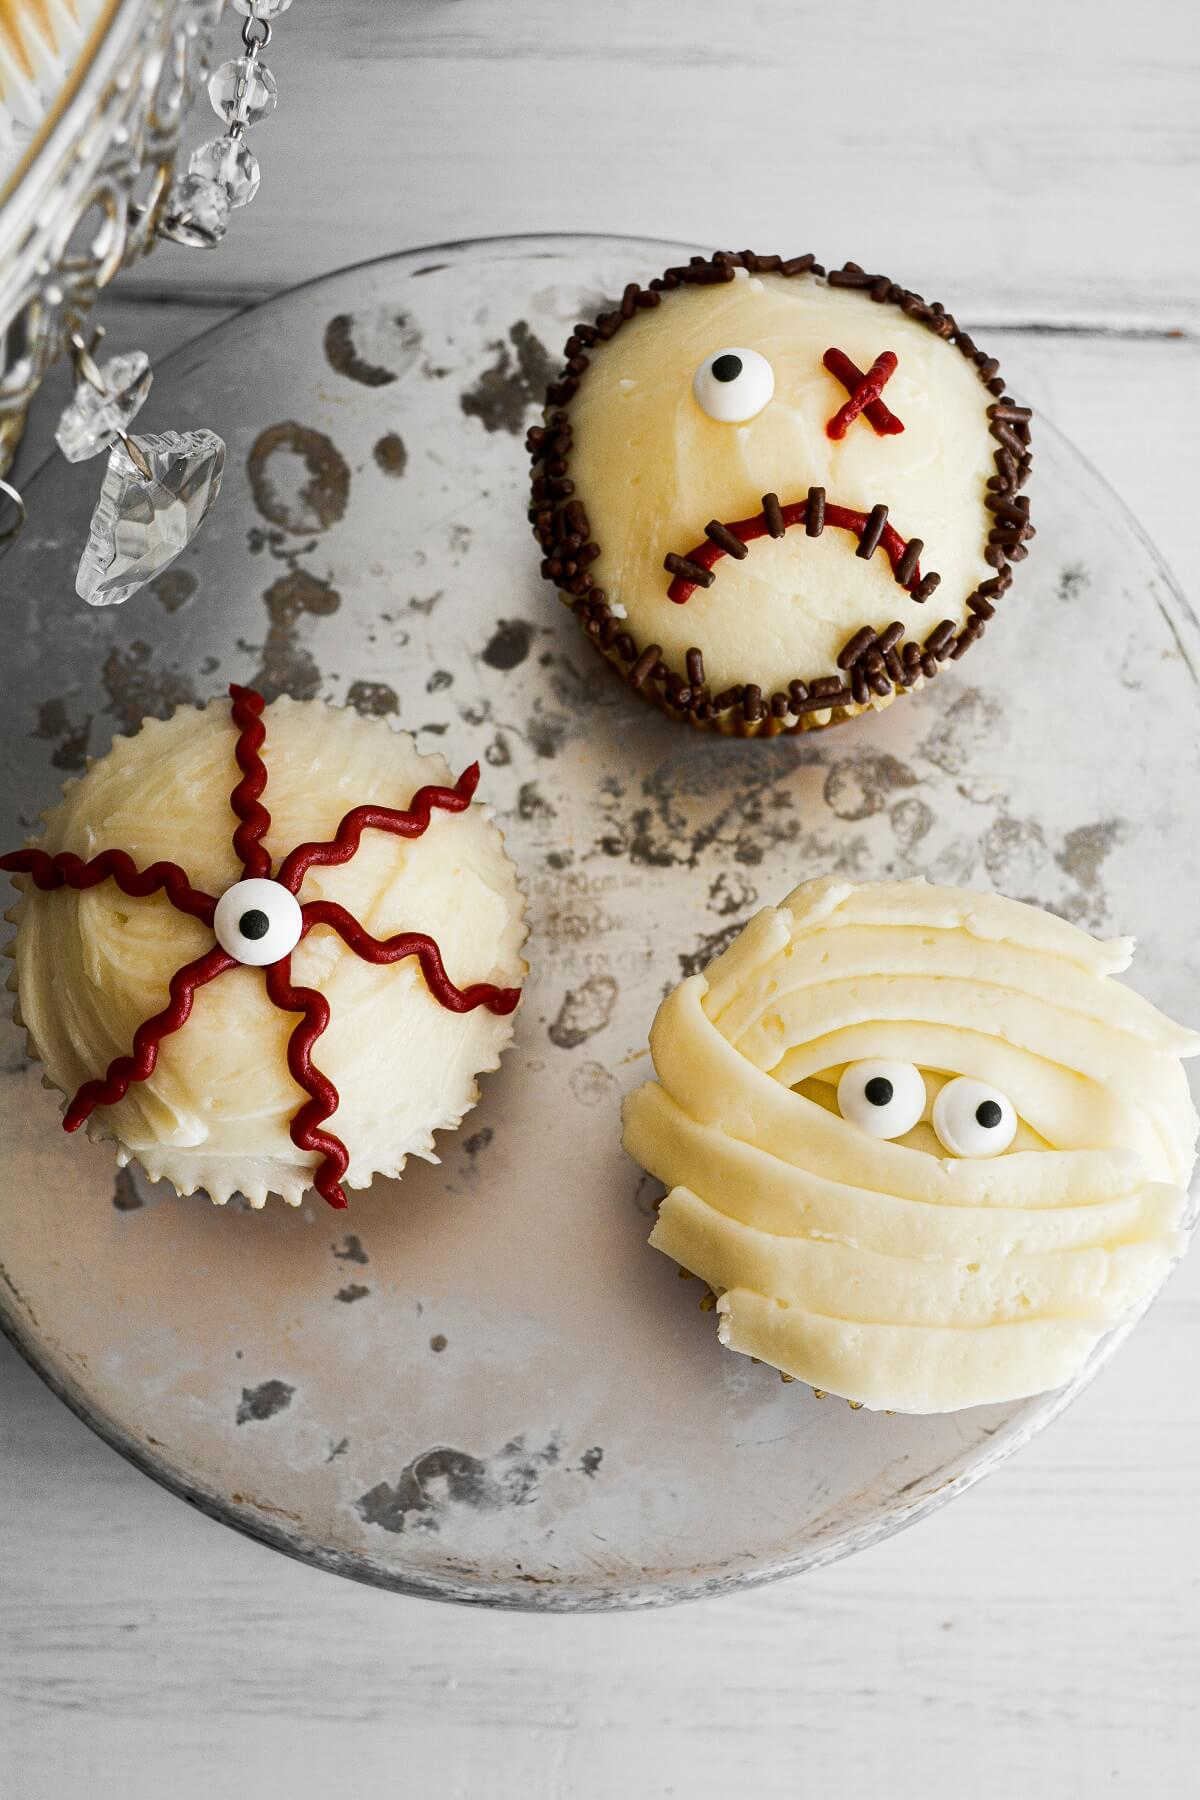 Halloween cupcakes with an eyeball, zombie and mummy.